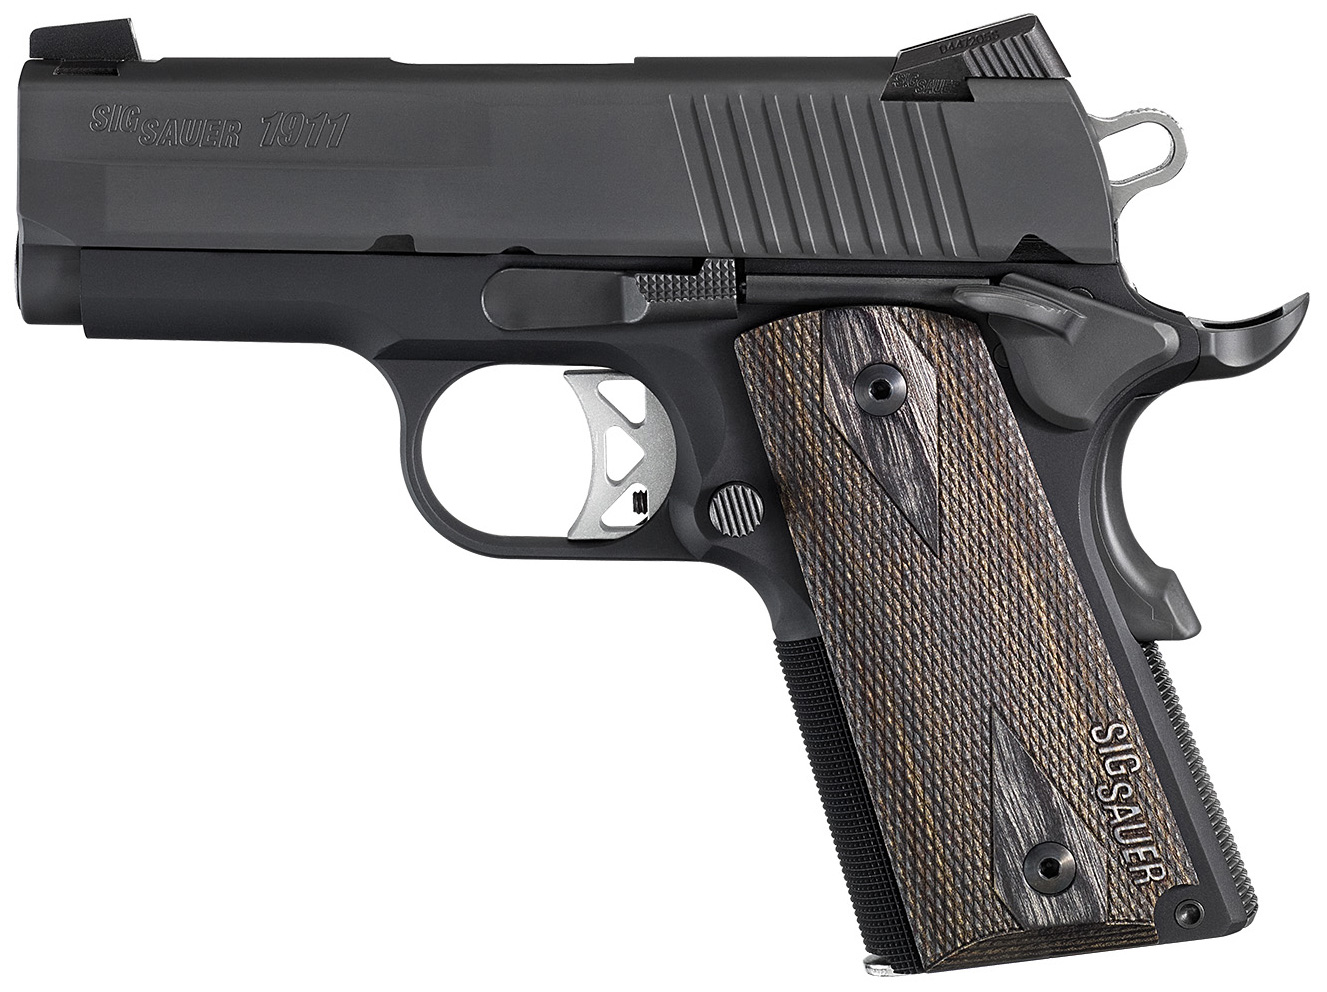 The Pros and Cons of Aluminum Framed Handguns